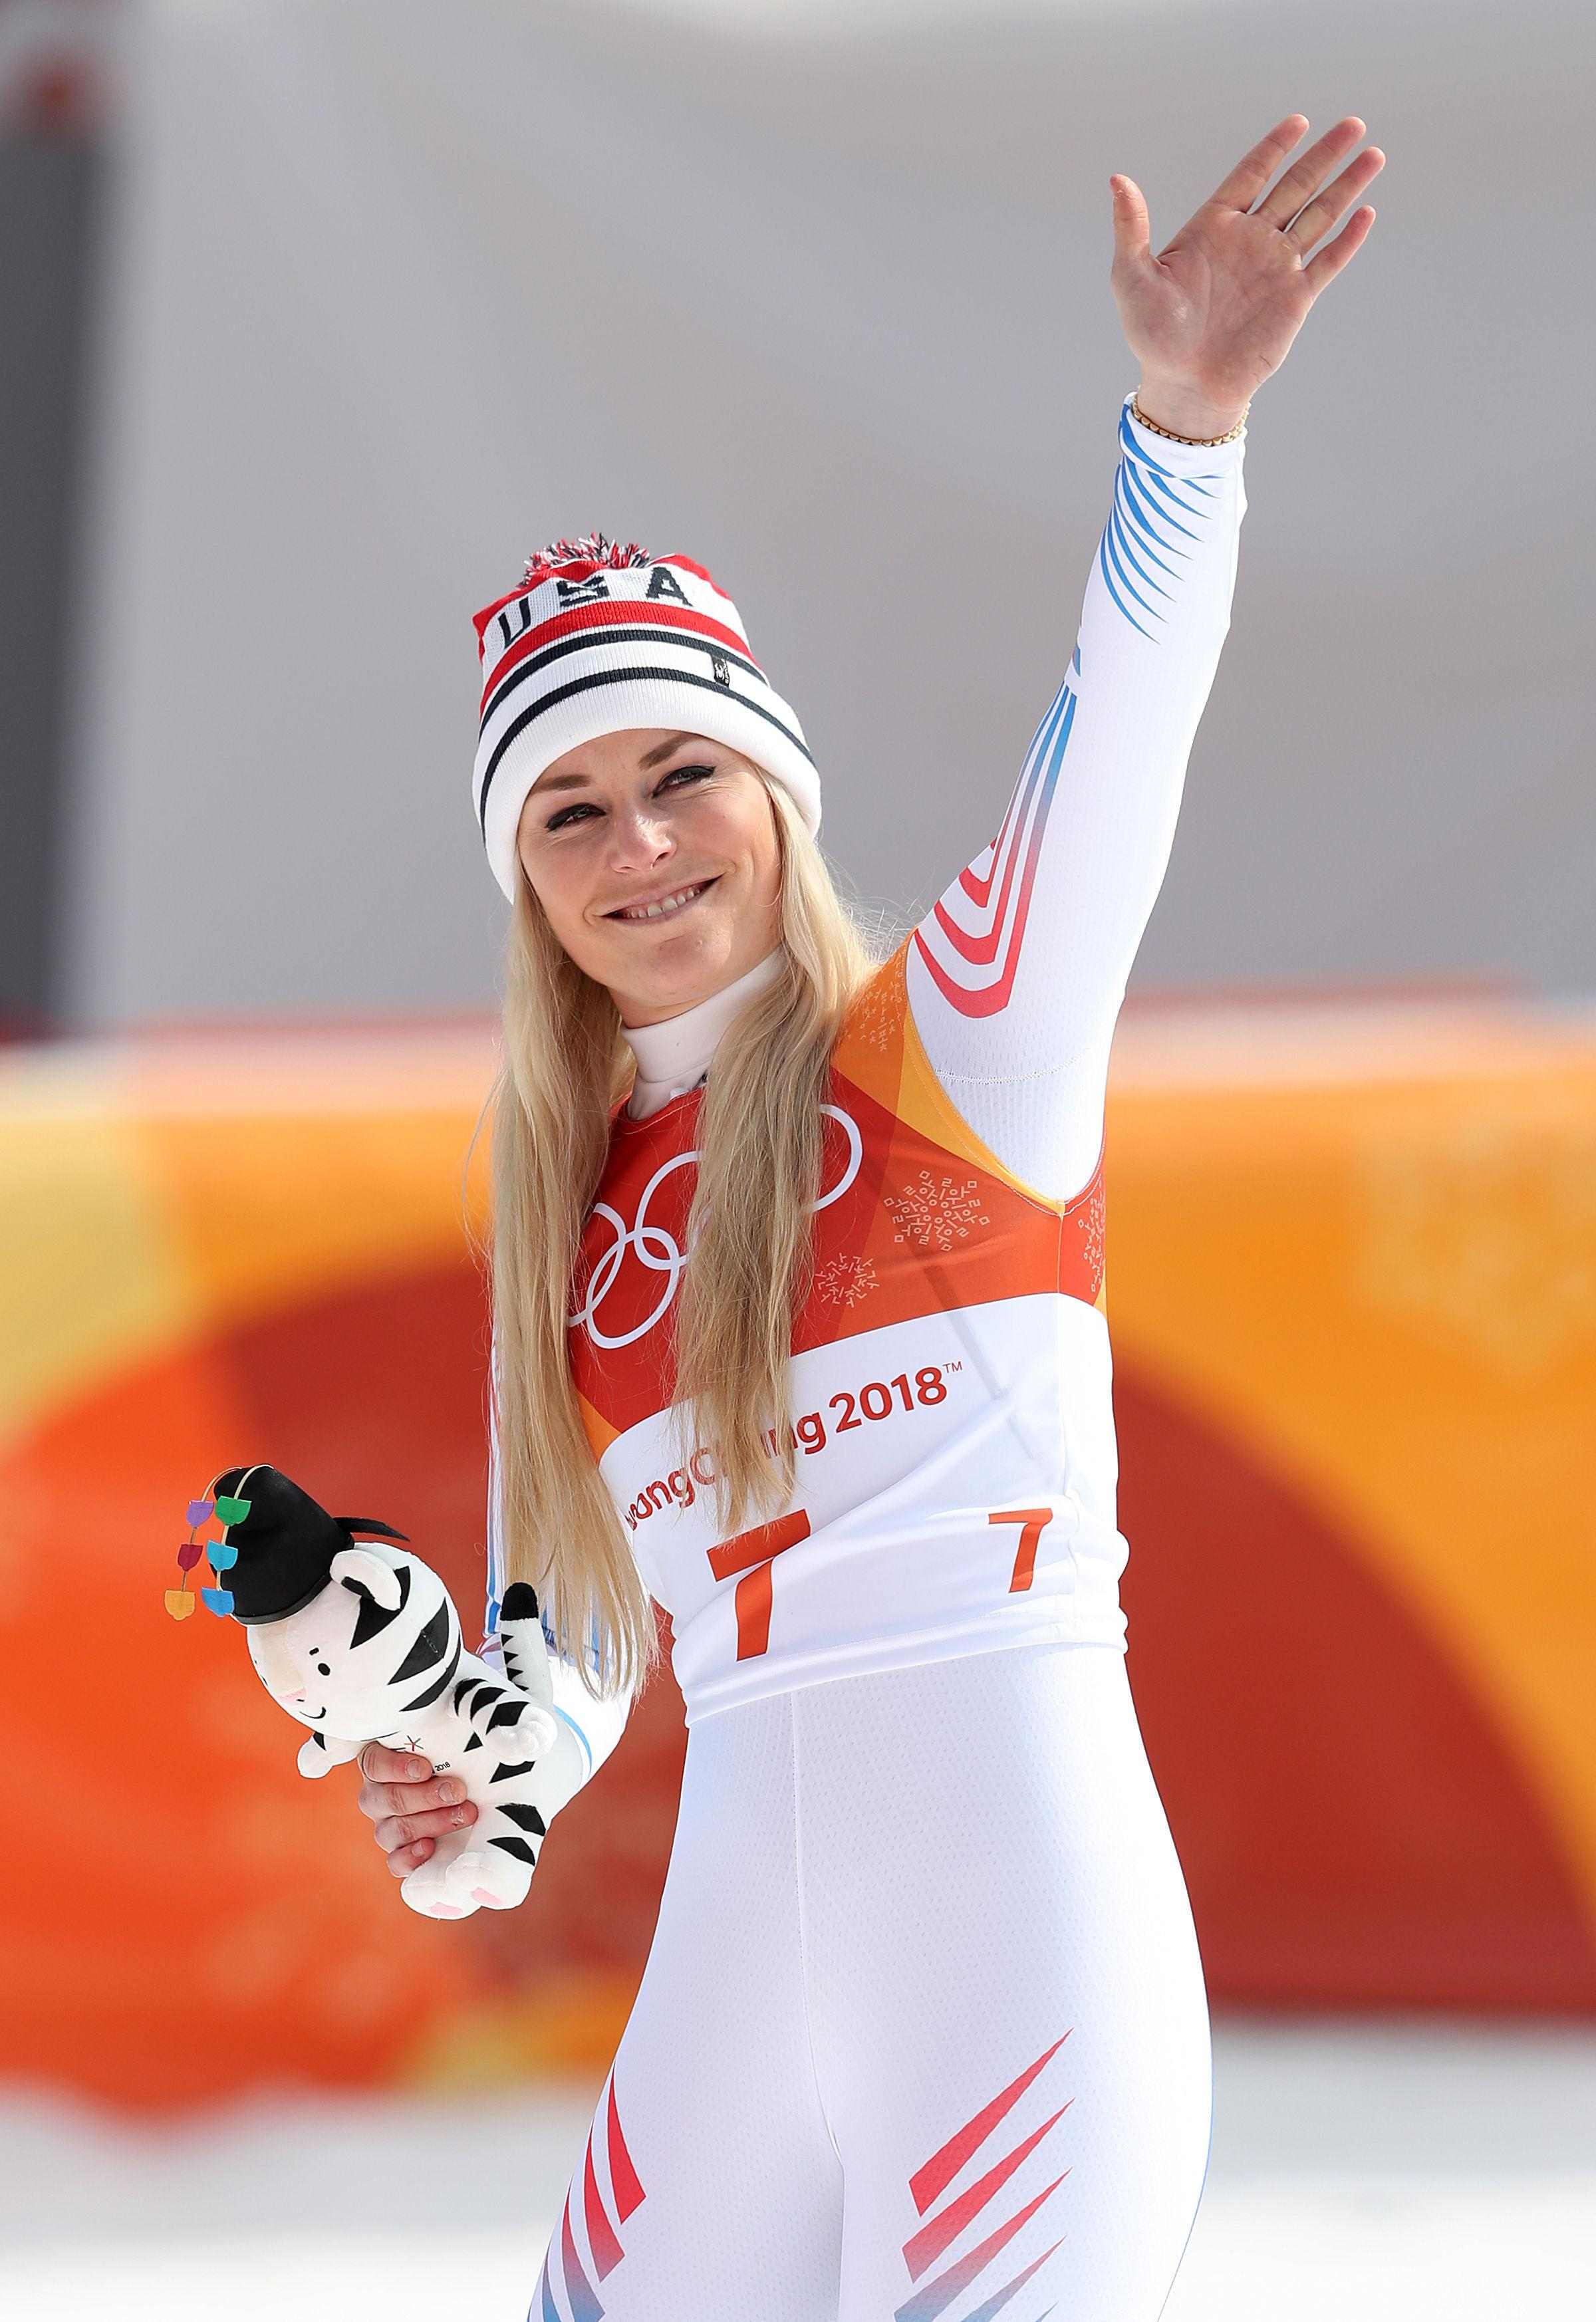 Lindsey Vonn has announced she will retire at the end of the season